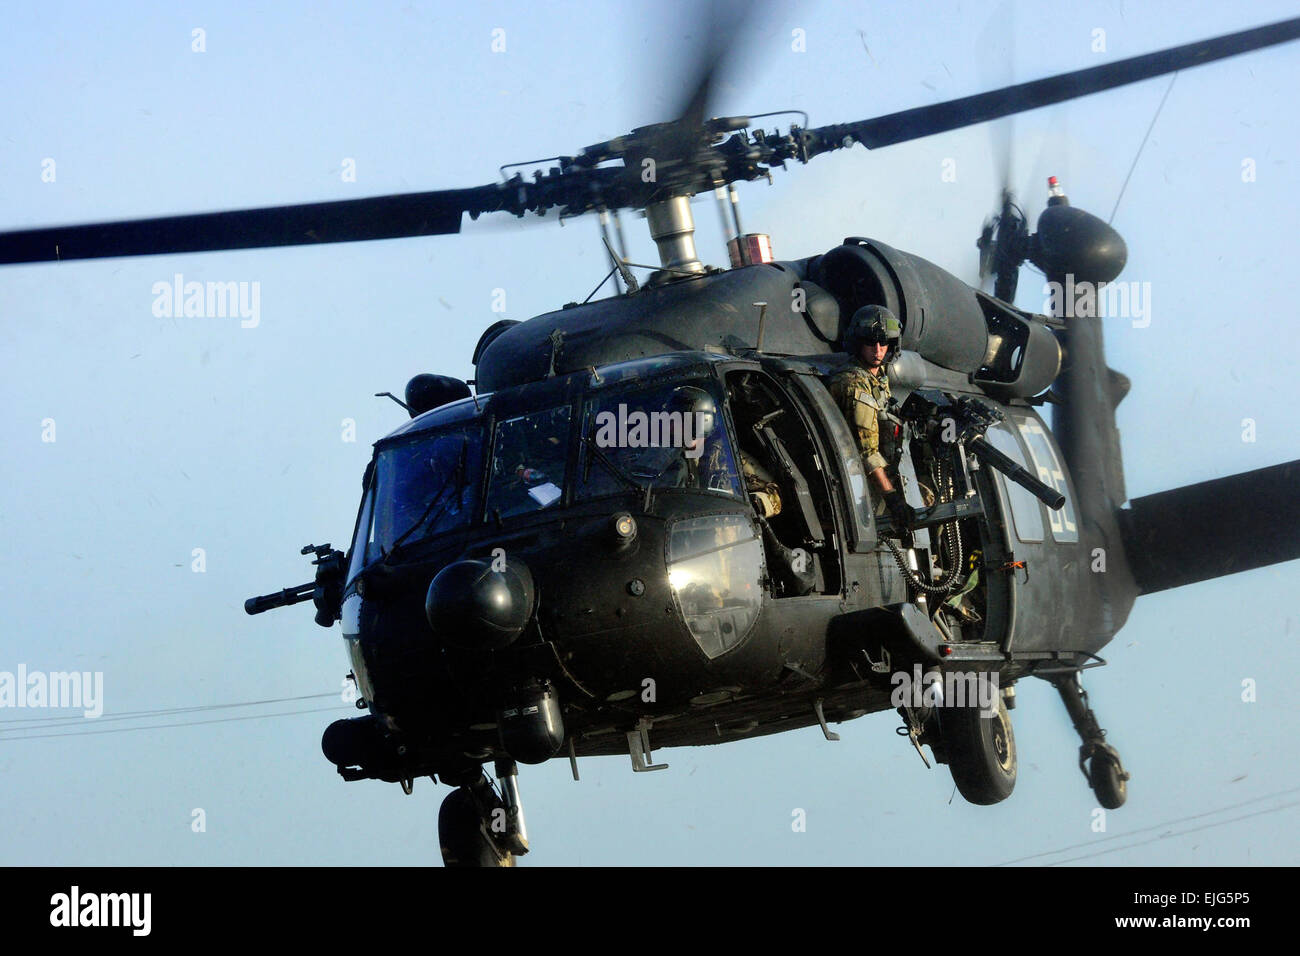 A U.S. Army crew chief observes the horizon from the side door of a UH-60 Black Hawk helicopter as they prepare - Stock Image